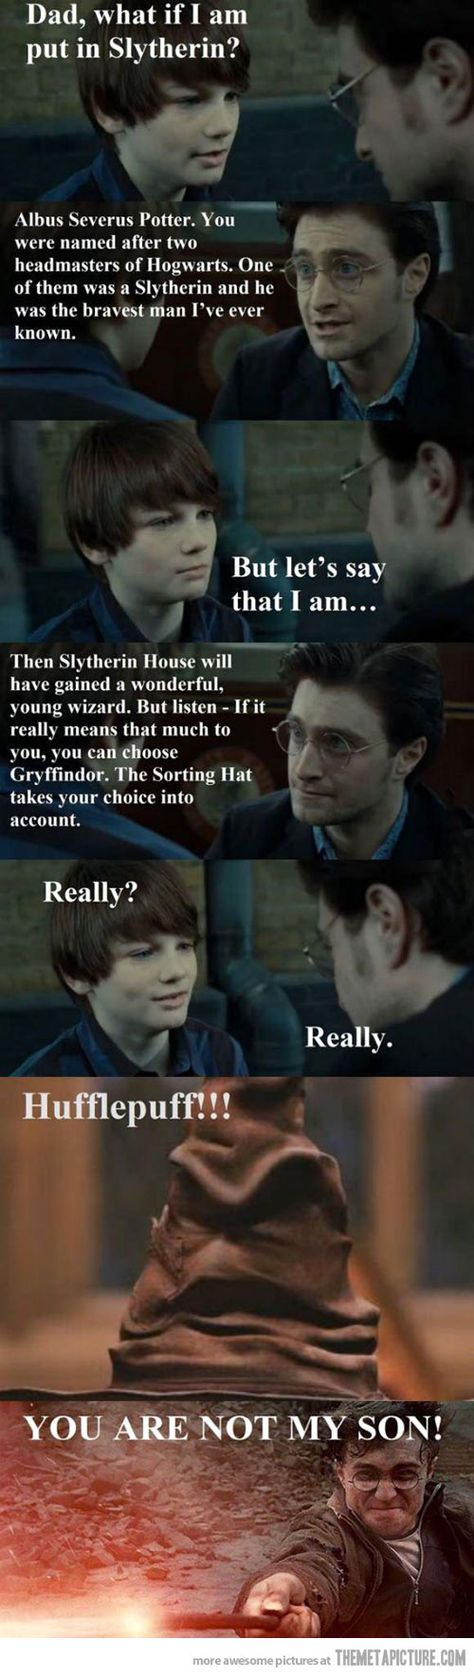 """""""What If I'm Put In Slytherin?"""" A funny parody involving Harry's son Albus, after that heart-to-heart Father-Son talk at the end of the series..."""